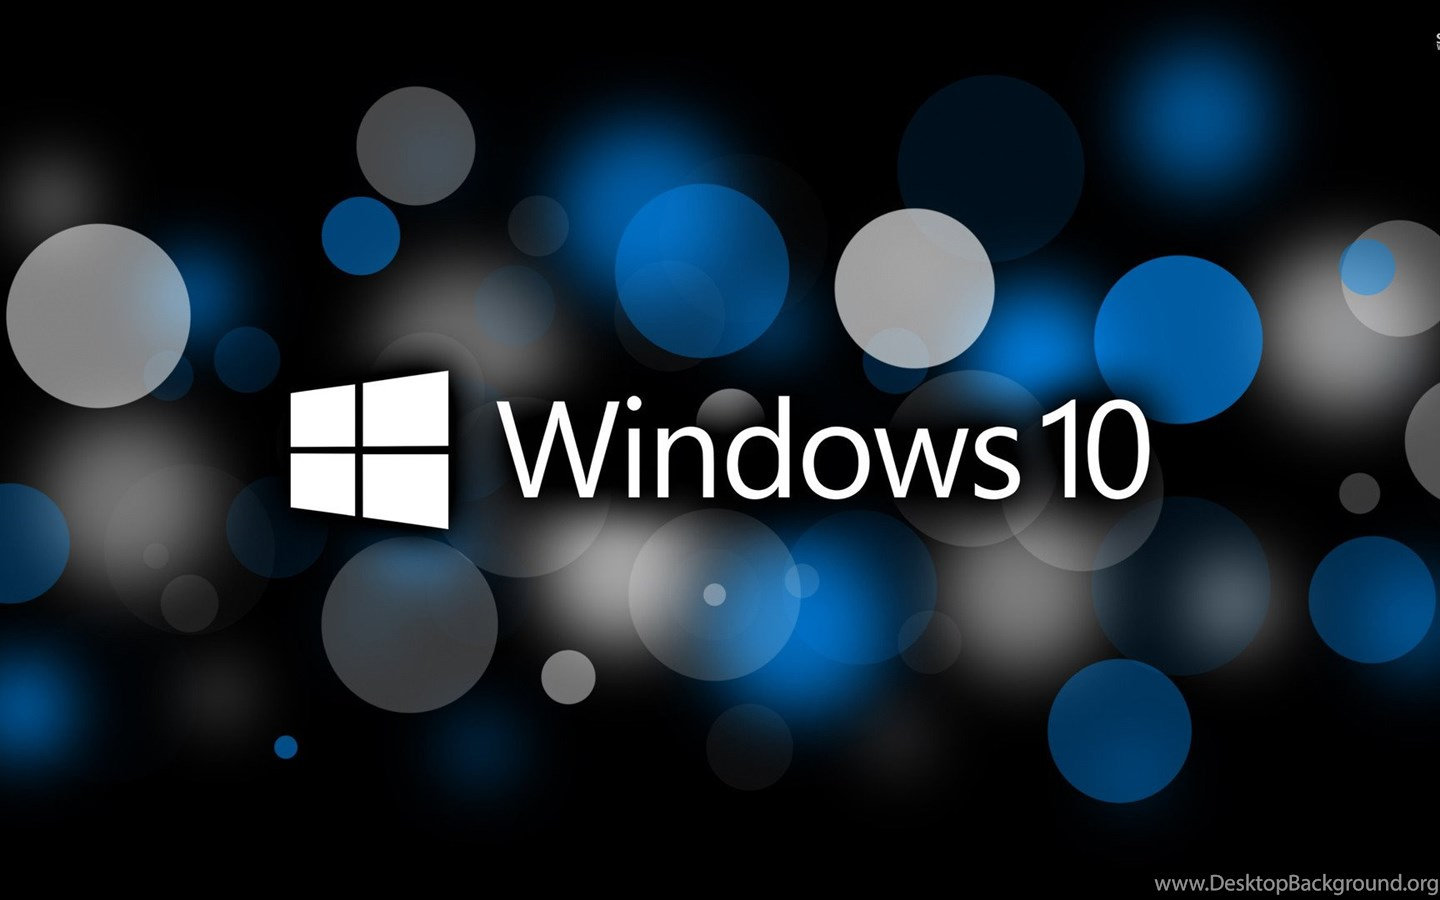 10 New Windows 8 Wallpaper Hd 3d For Desktop Full Hd 1920: Wallpapers Windows 10 HD CuteWallpaper.org Desktop Background